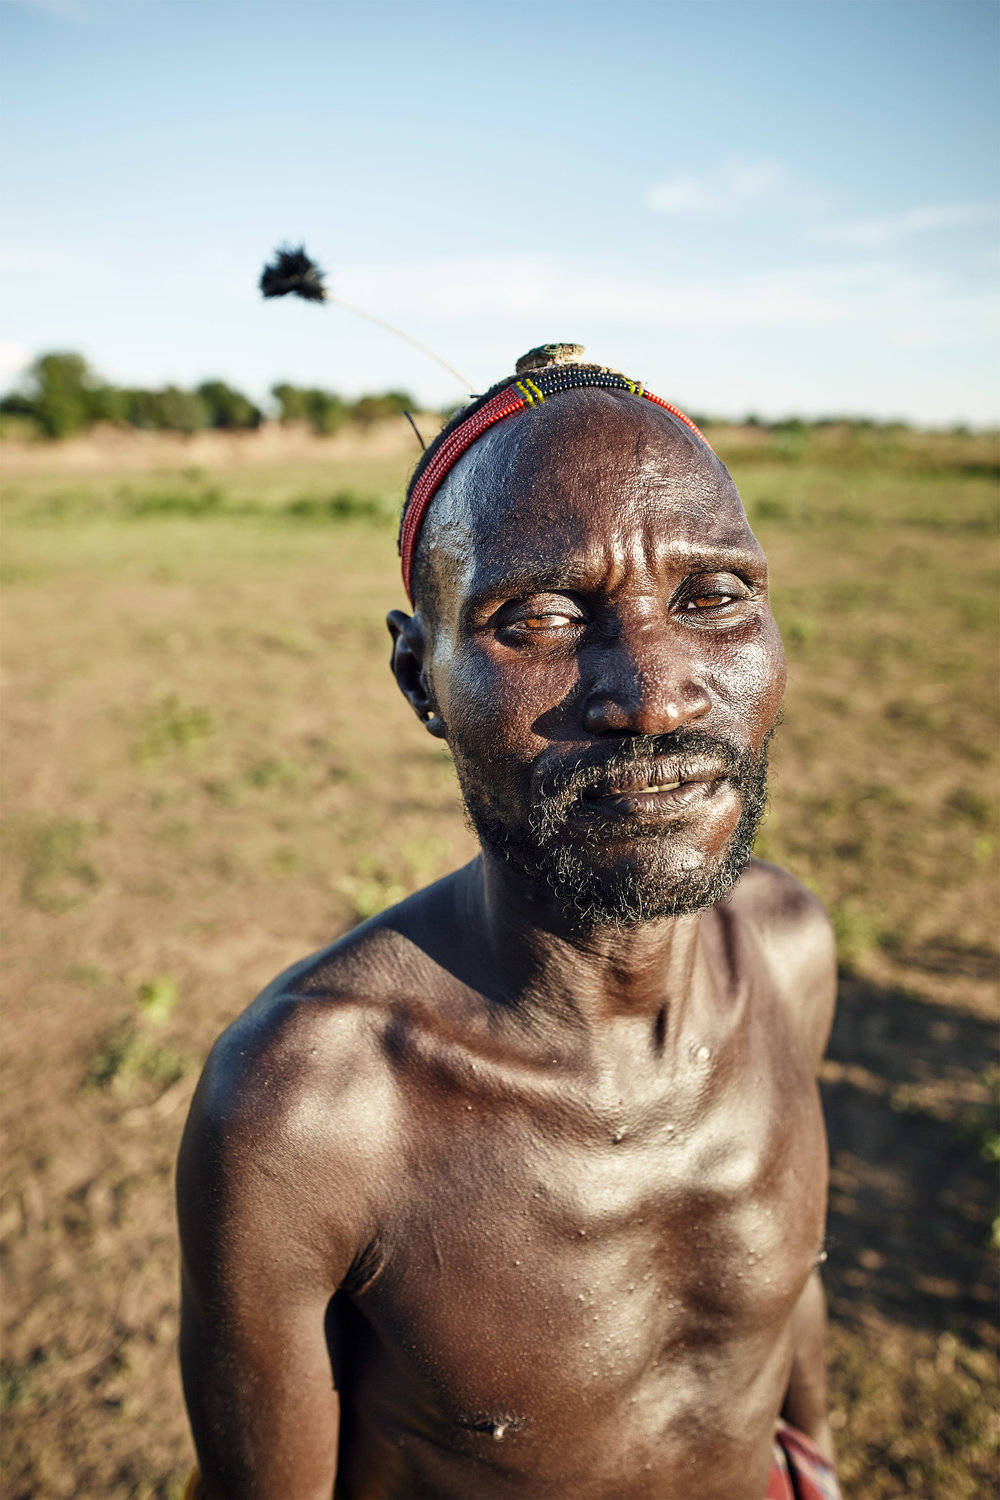 DAASANACH TRIBE CHIEF IN LOWER OMO VALLEY, ETHIOPIA